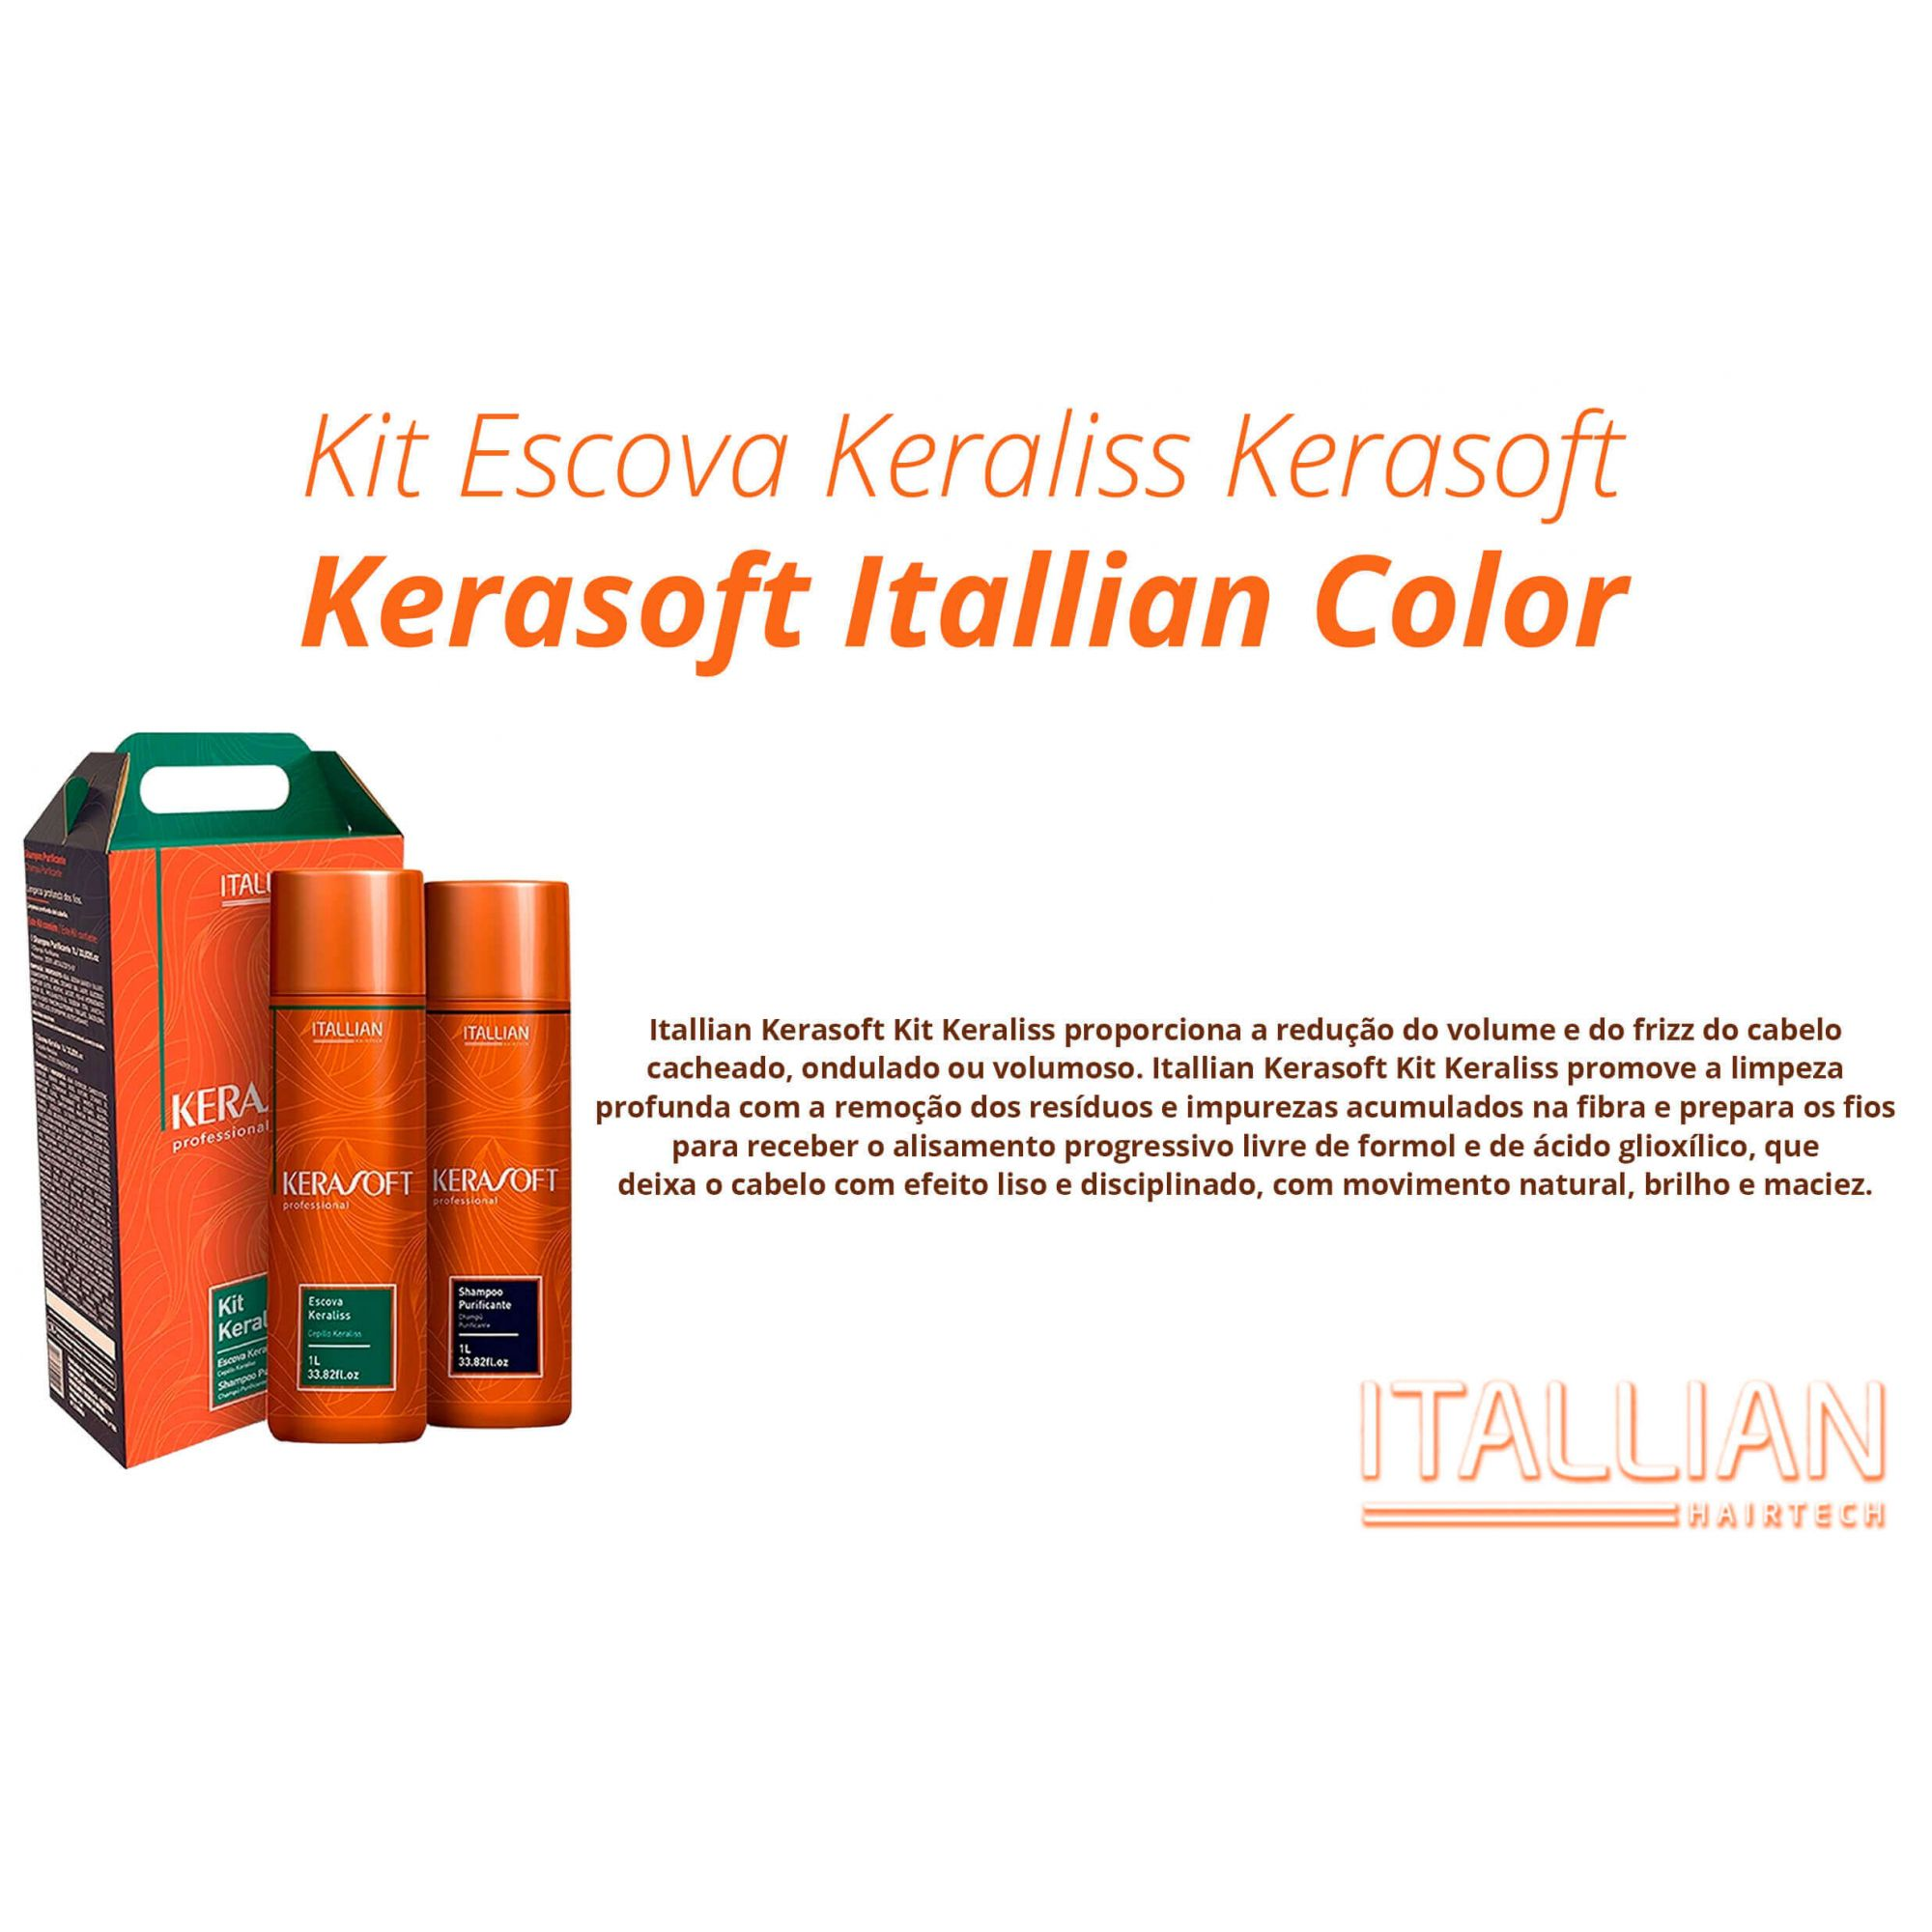 Kit Escova Keraliss Kerasoft Itallian Color + Brindes